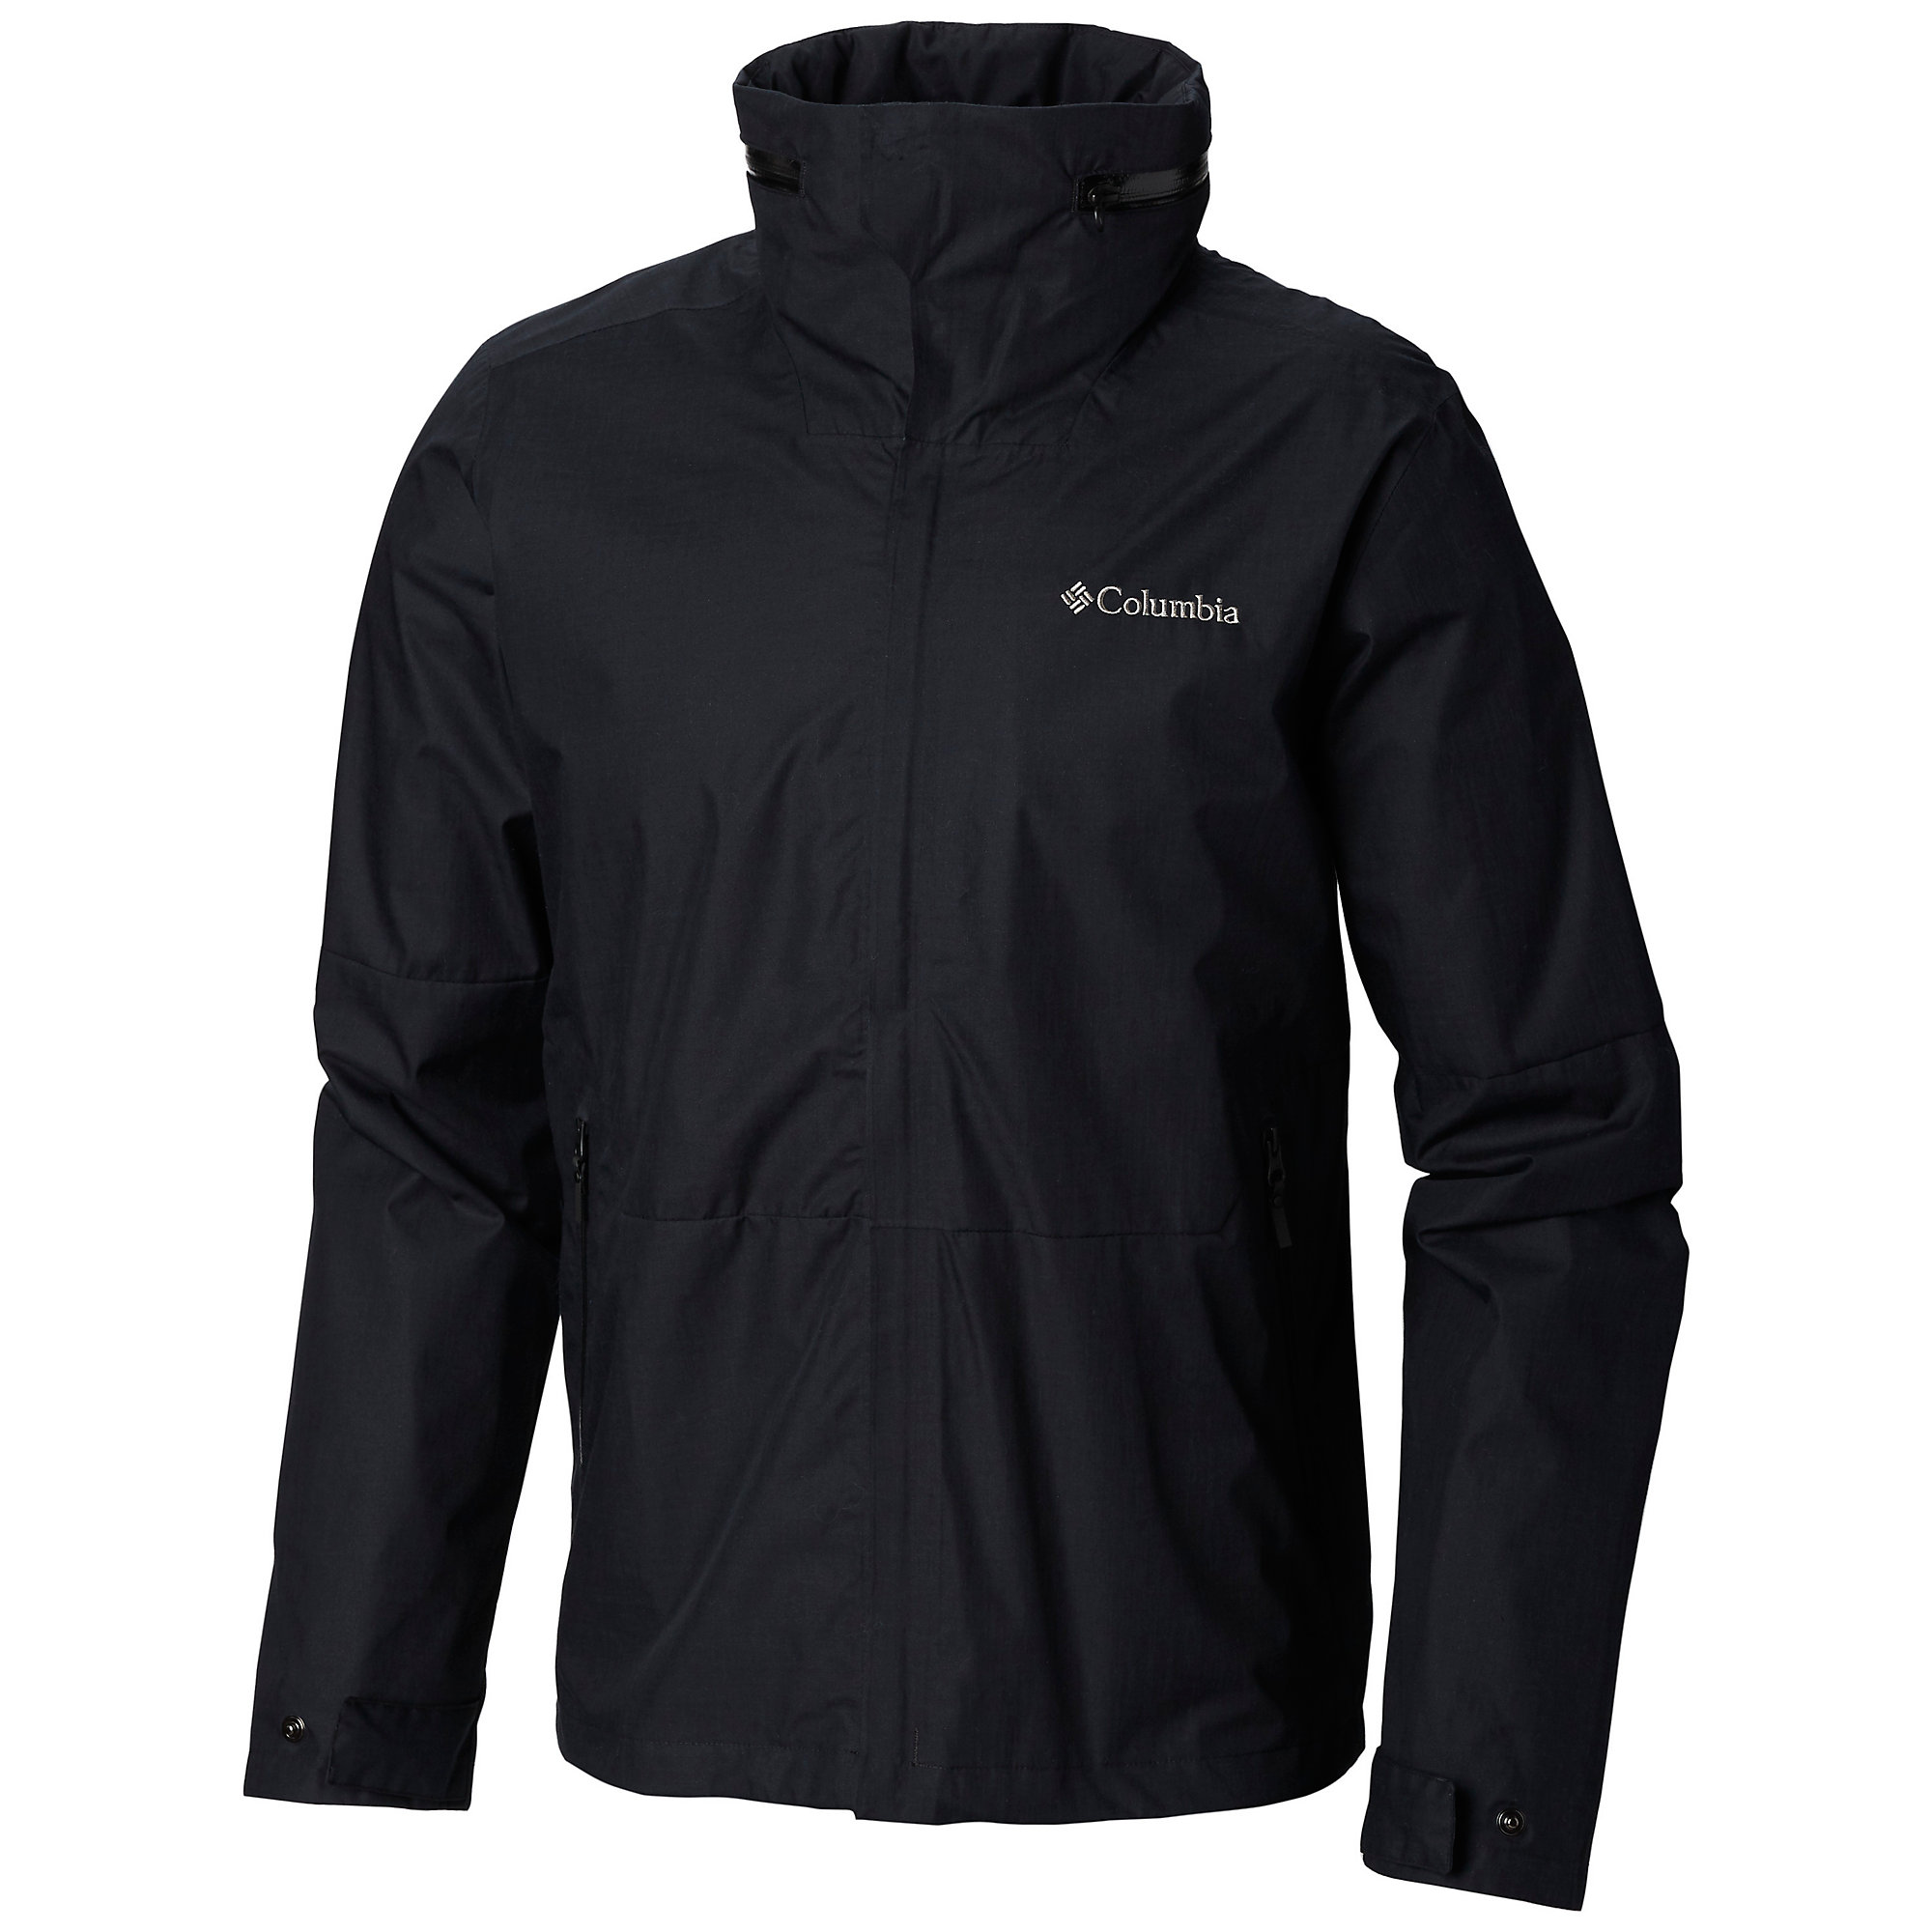 Columbia Westbrook Jacket 010 S-